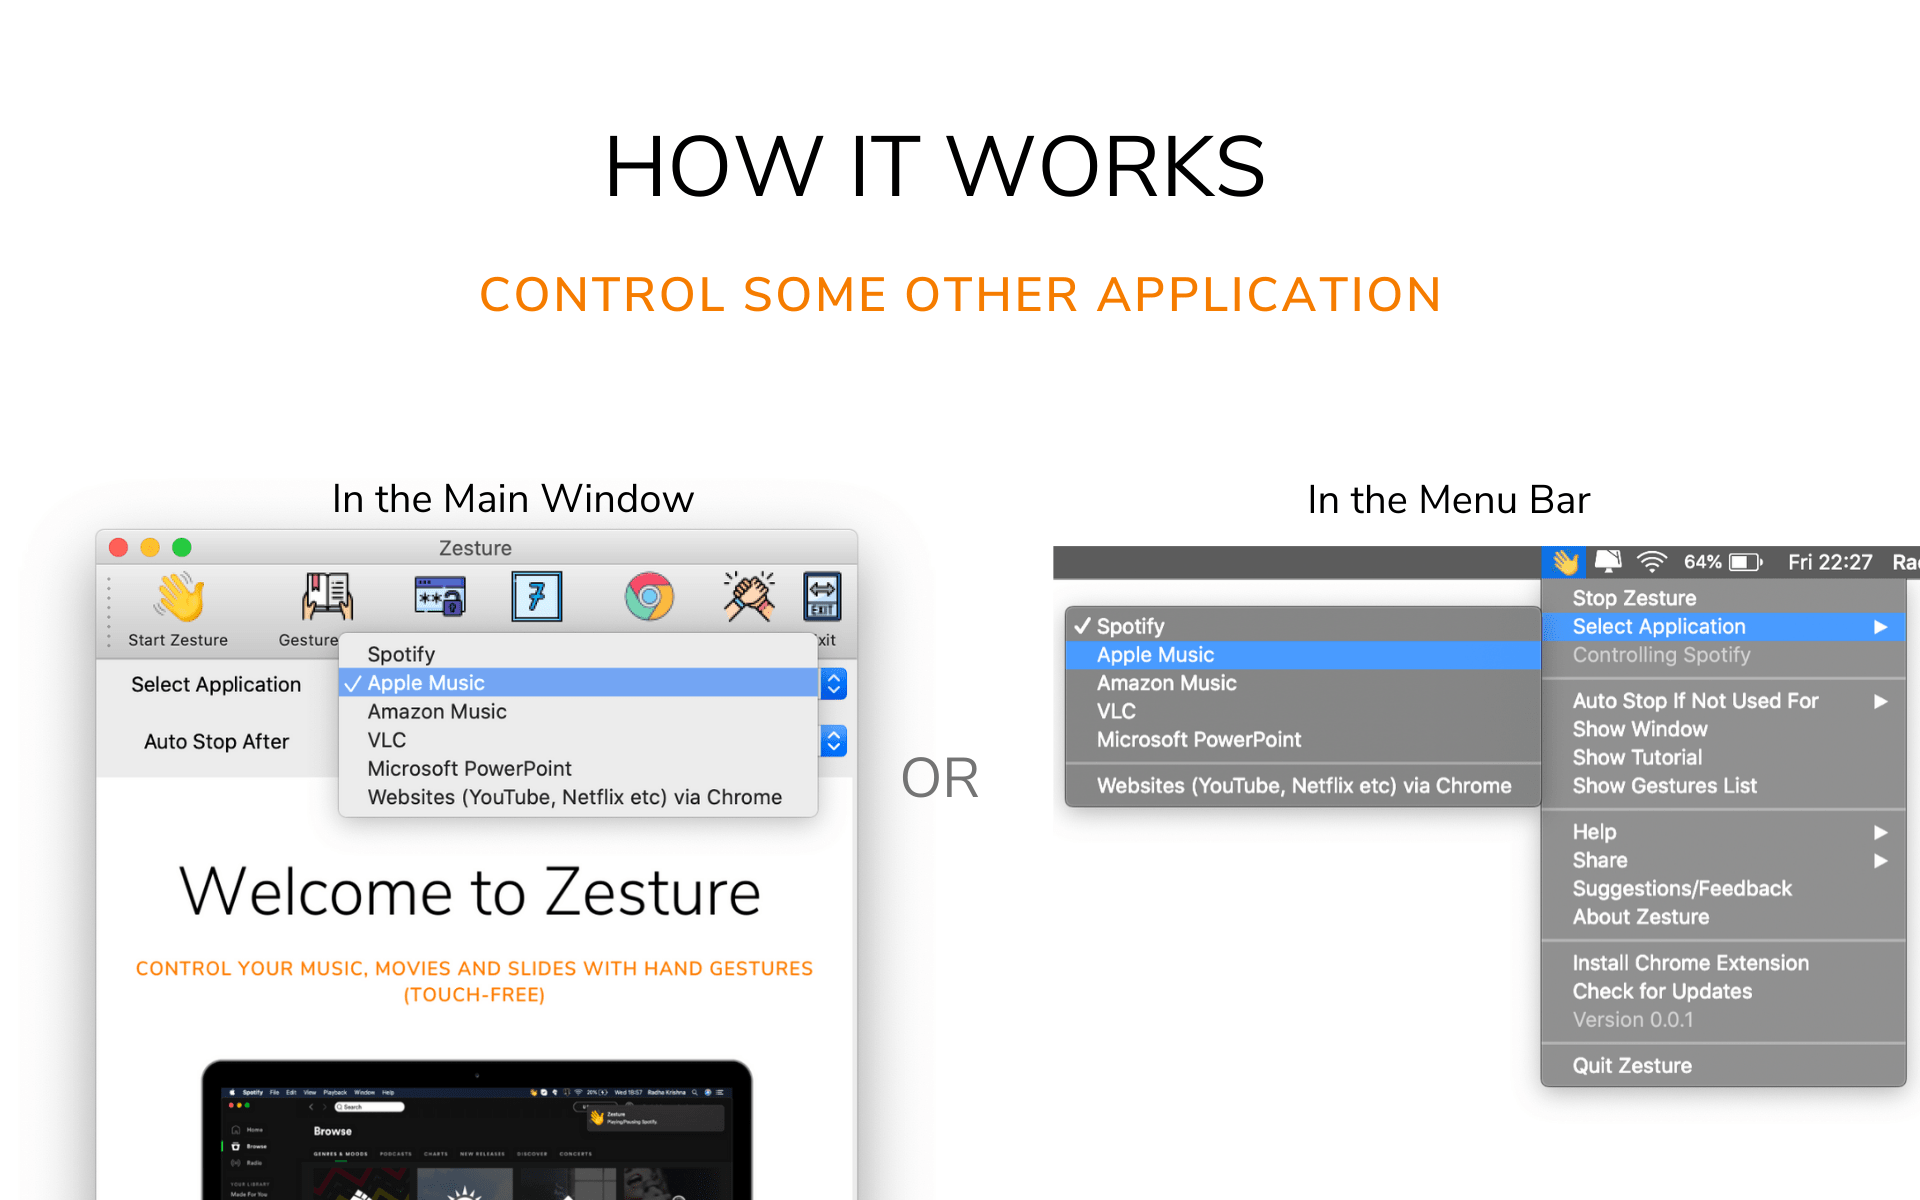 Control some other application